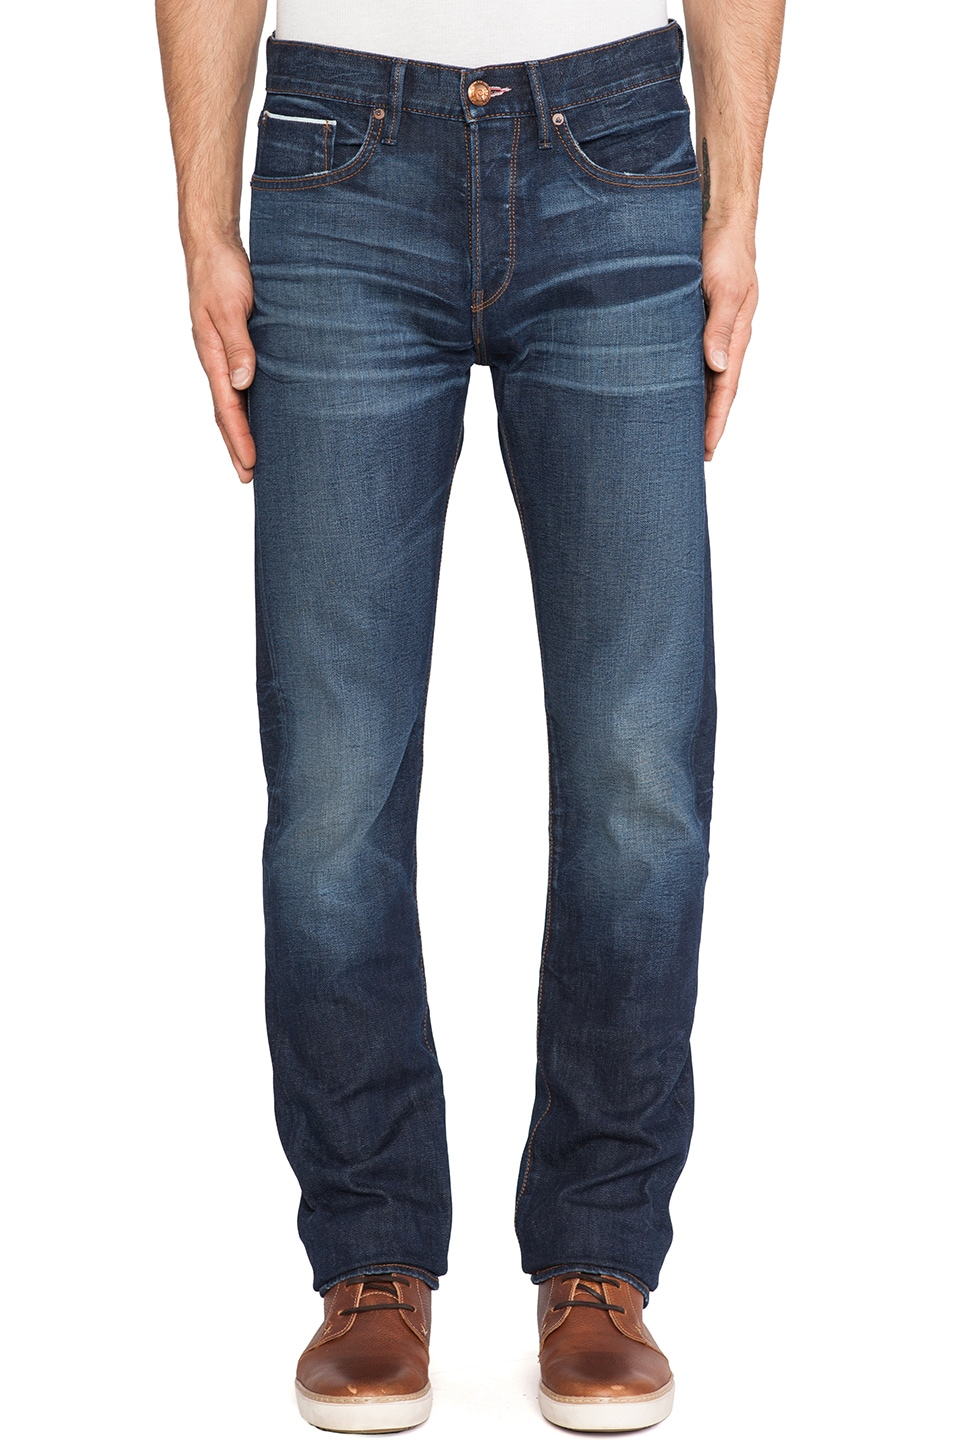 Lee 101 Lean Straight Selvage in Stock Yard